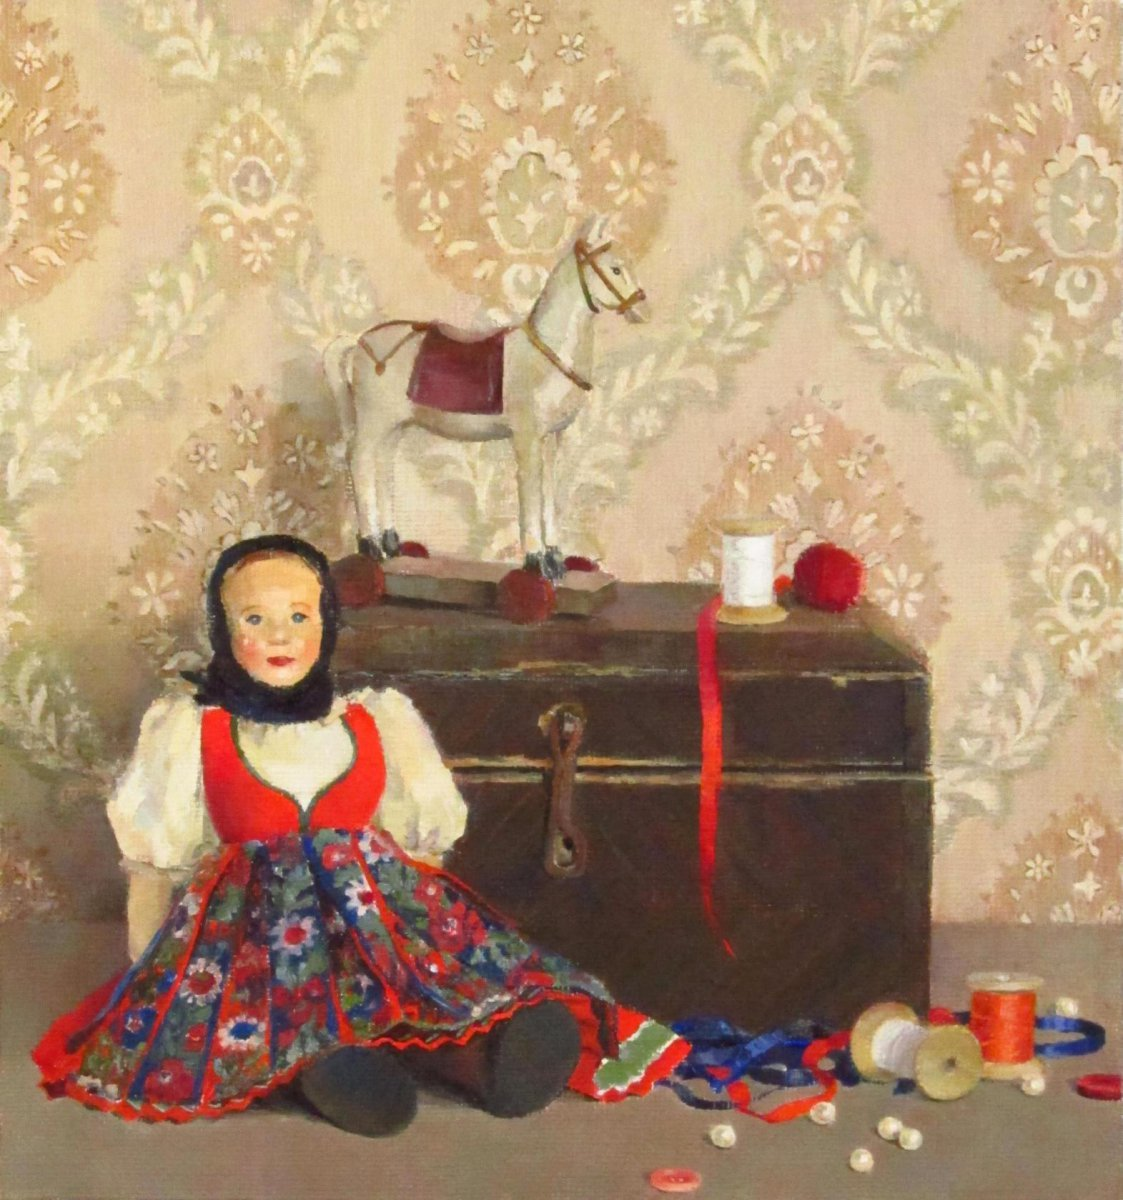 Still life with a doll - Evgenia Trifonova